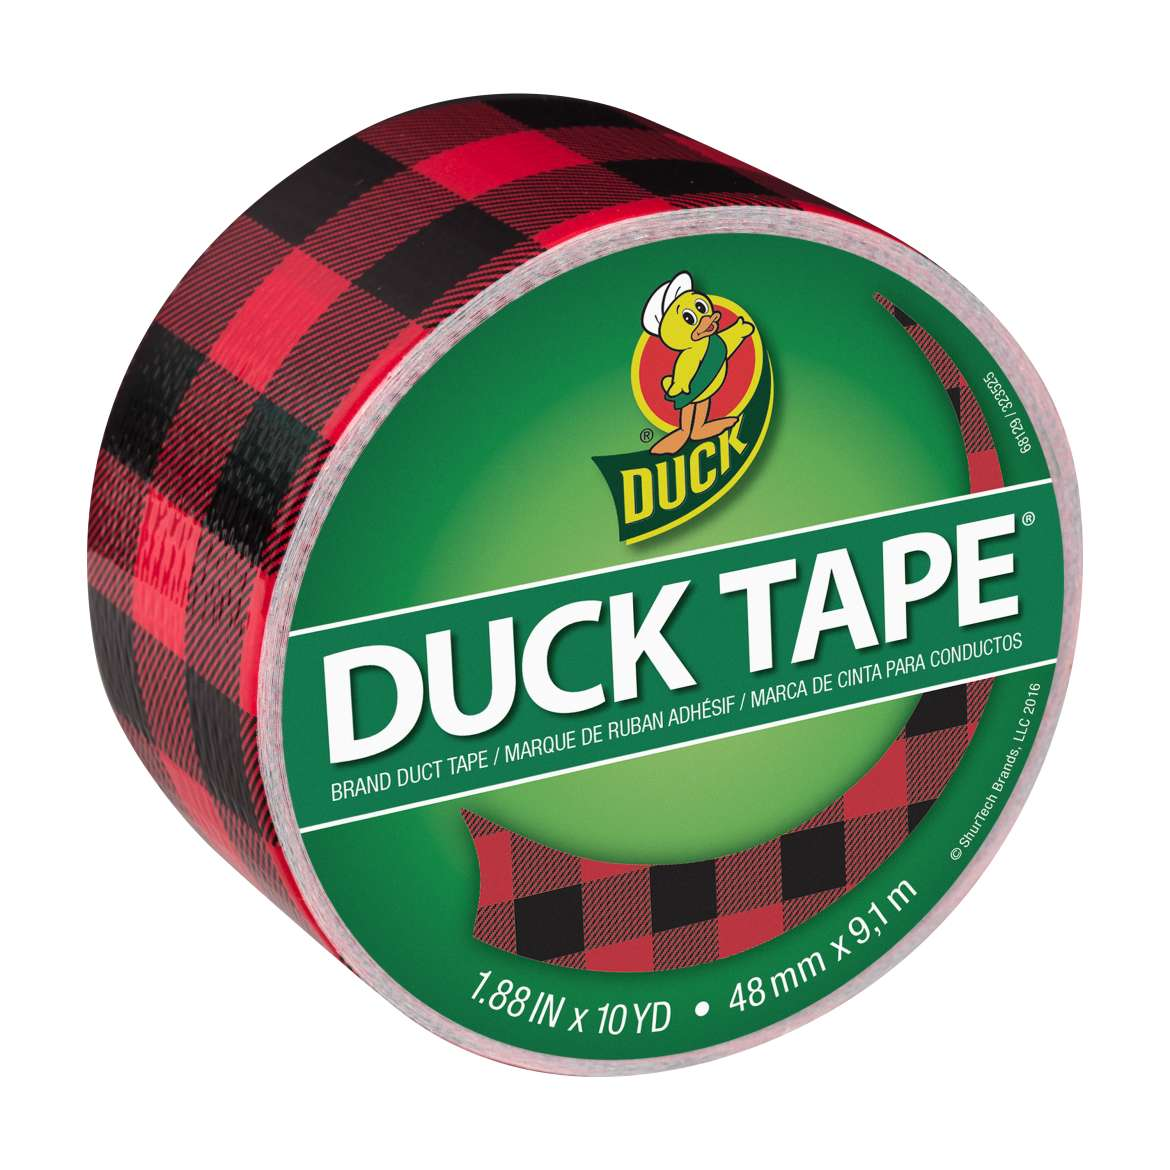 Printed Duck Tape® Brand Duct Tape - Buffalo Plaid, 1.88 in. x 10 yd. Image